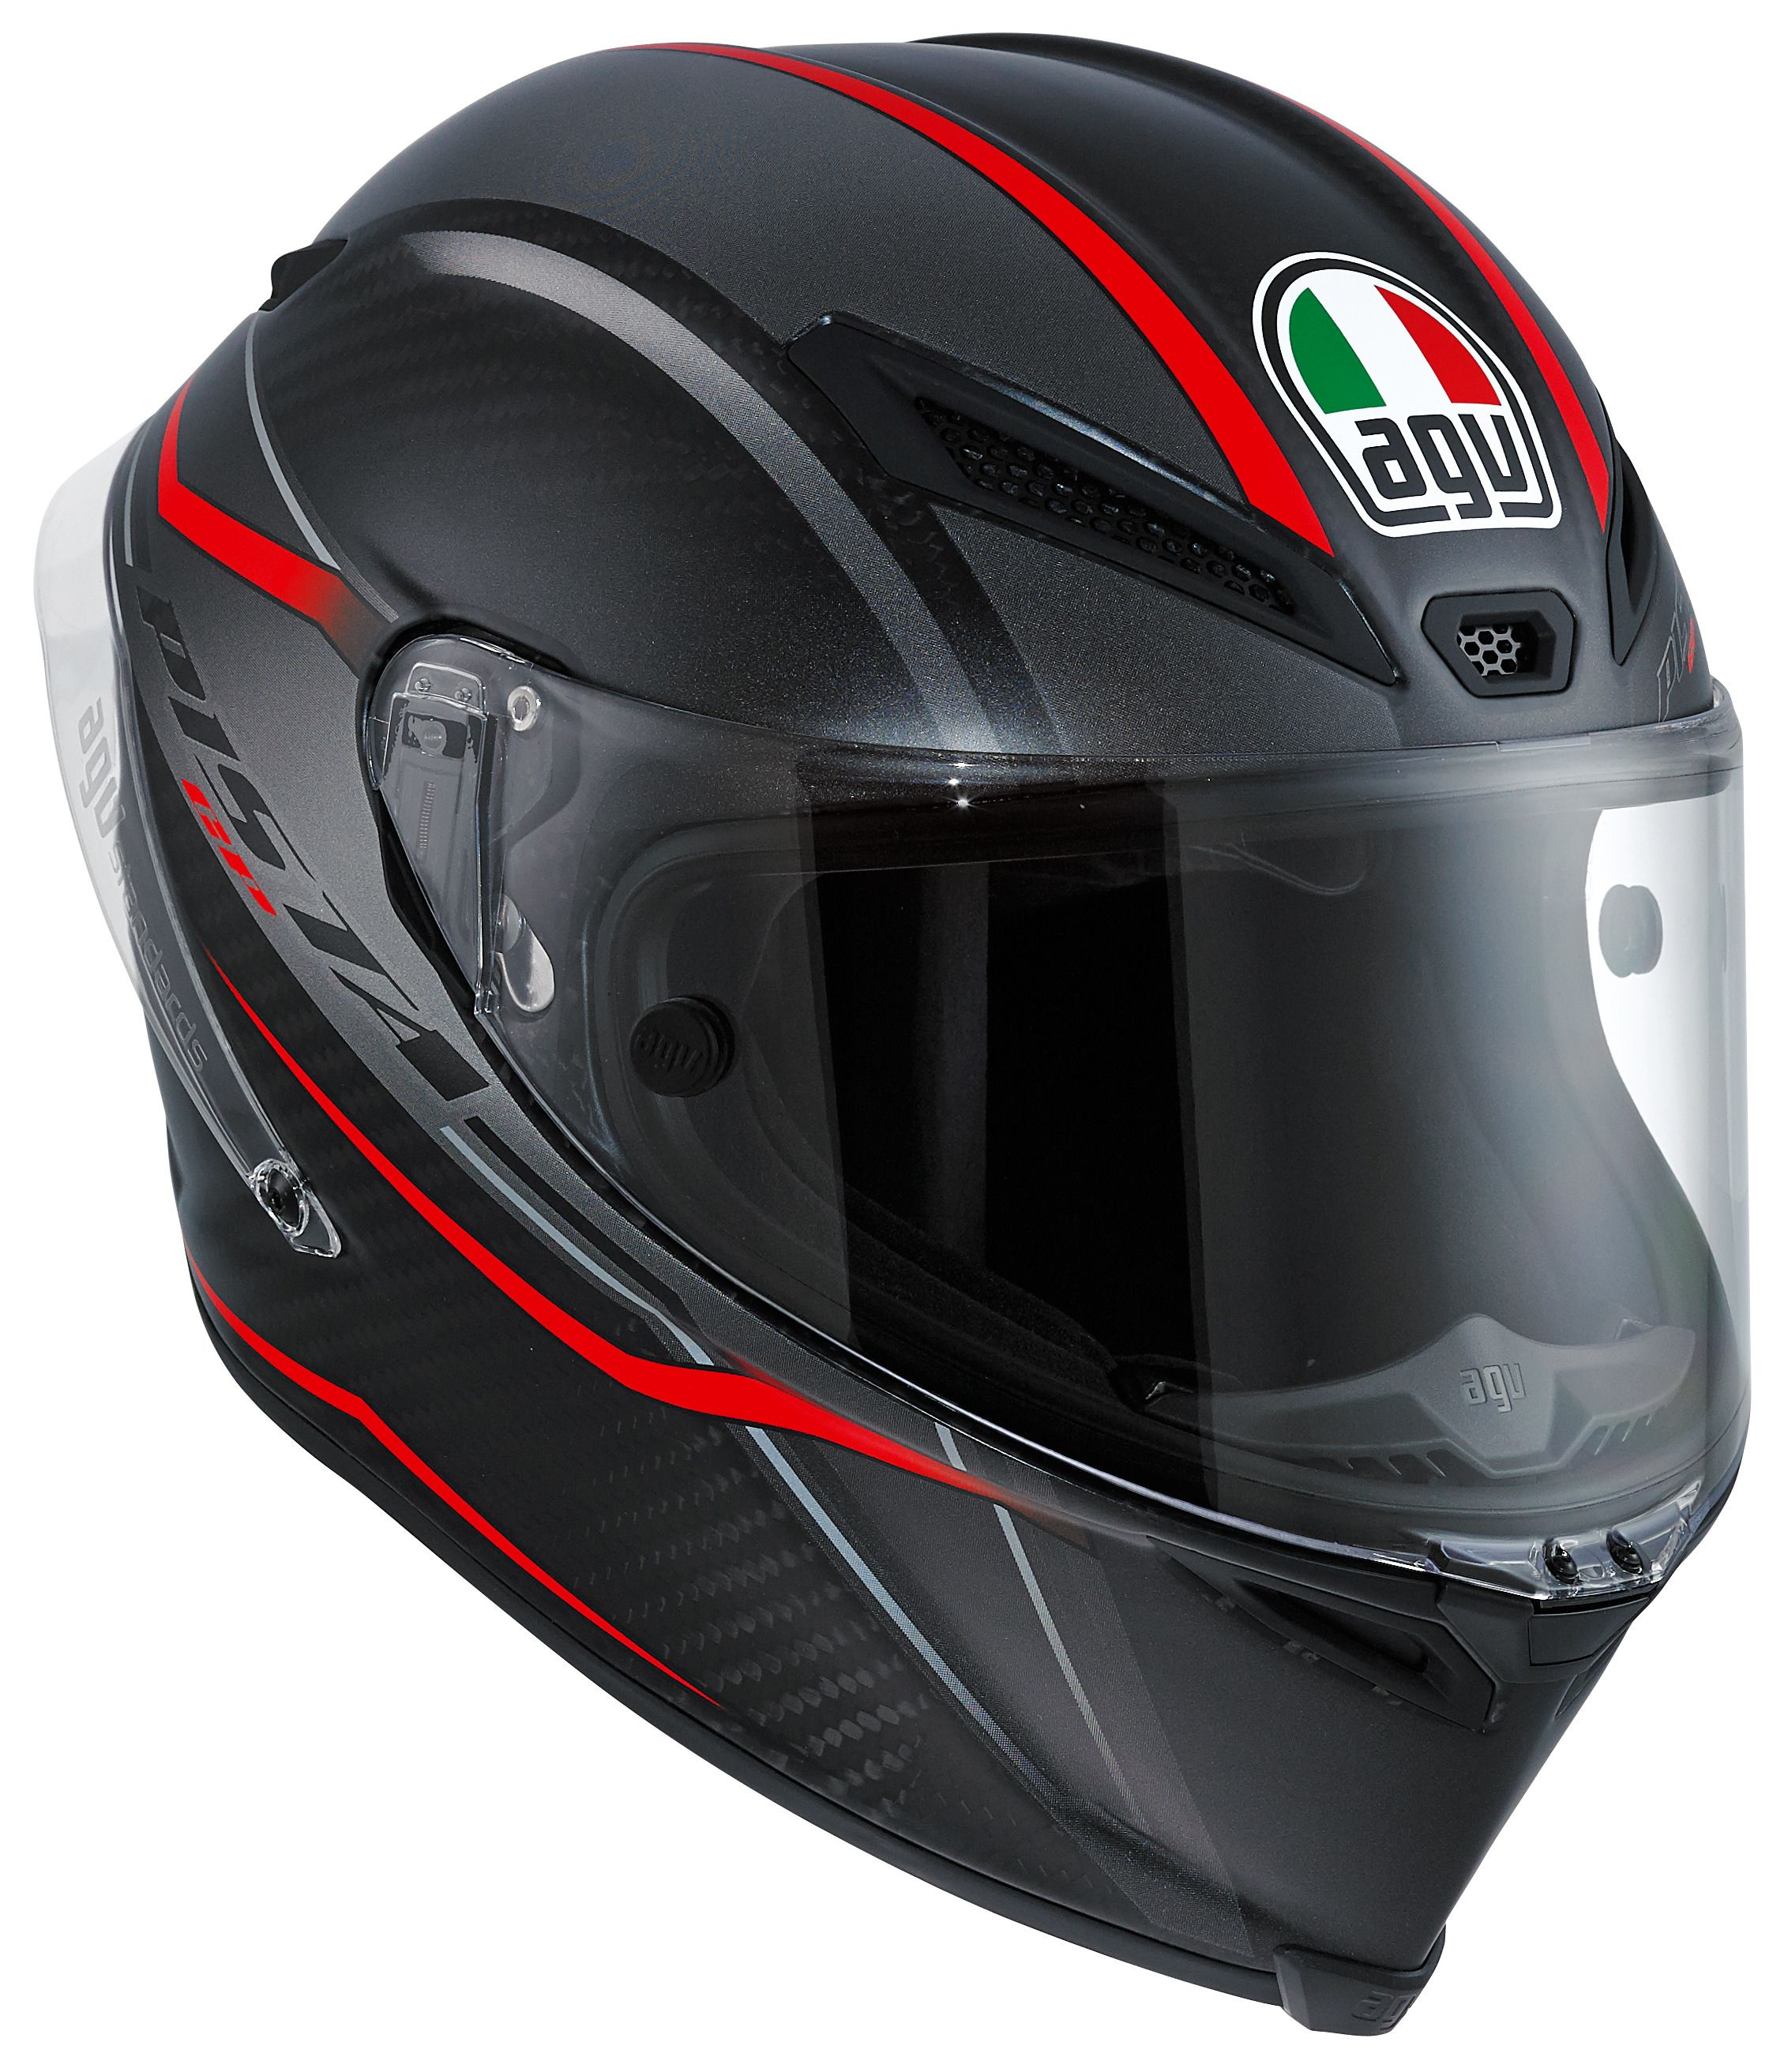 agv pista gp gran premio helmet size lg only 36 499. Black Bedroom Furniture Sets. Home Design Ideas